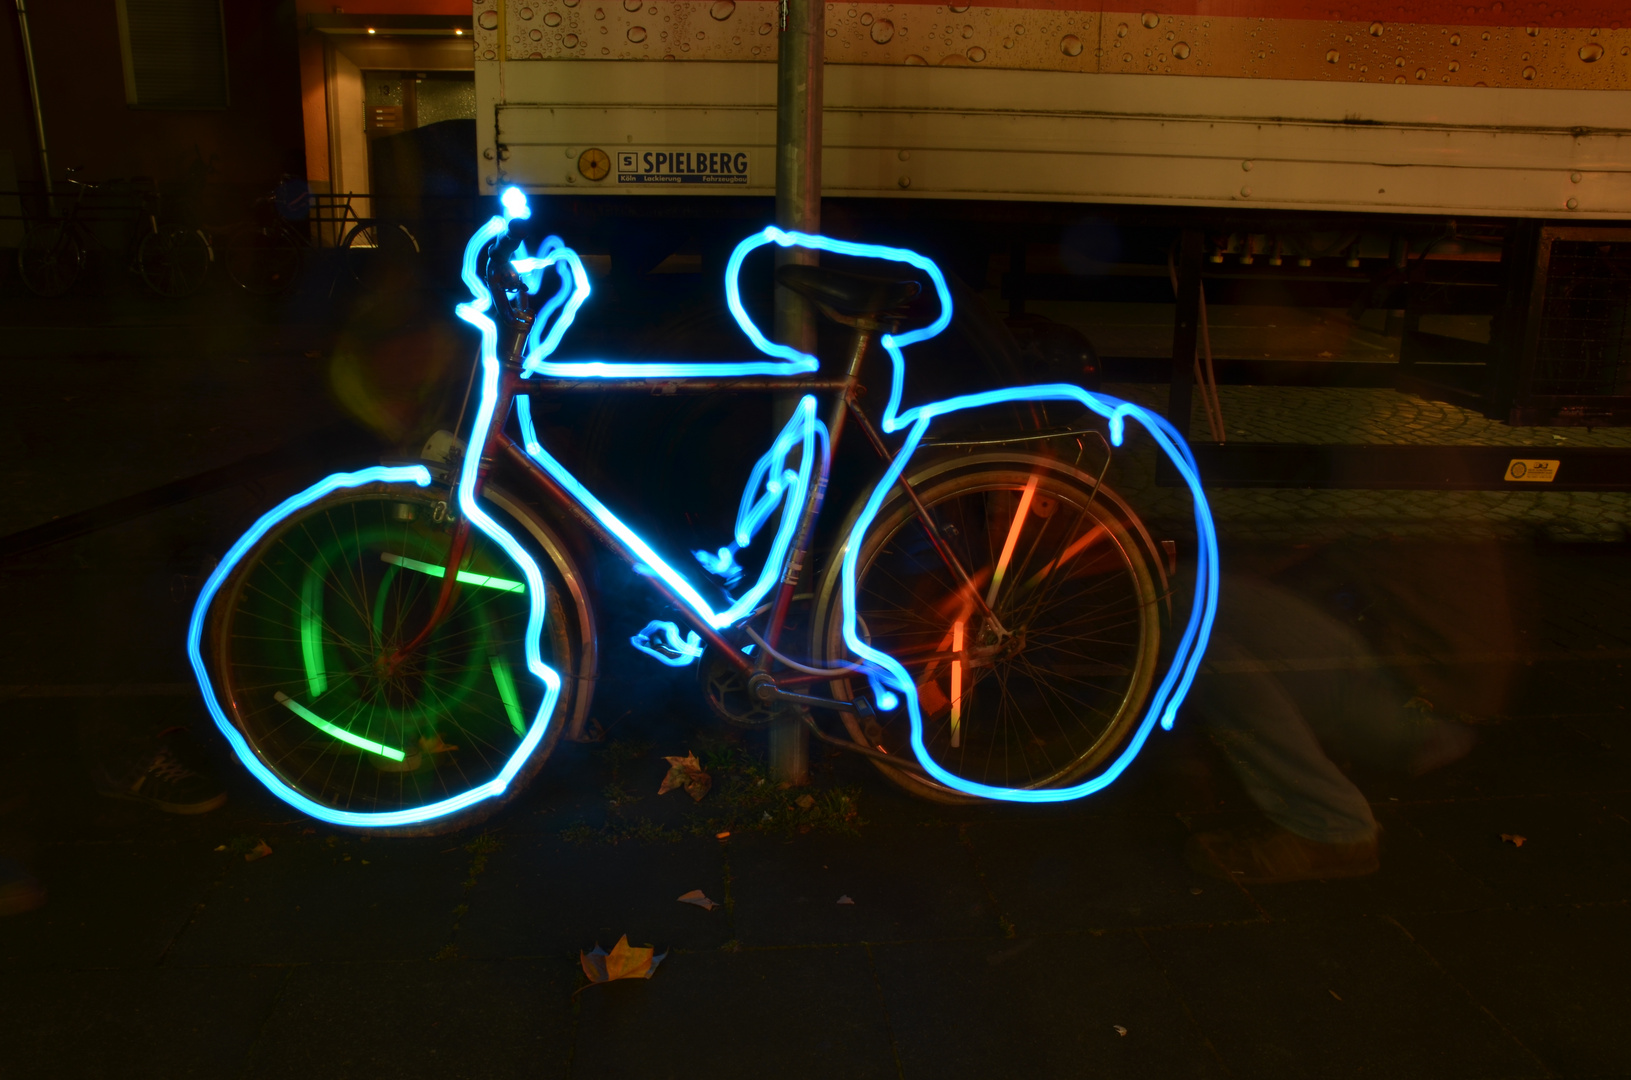 I want to ride my bicycle - Lightpainting